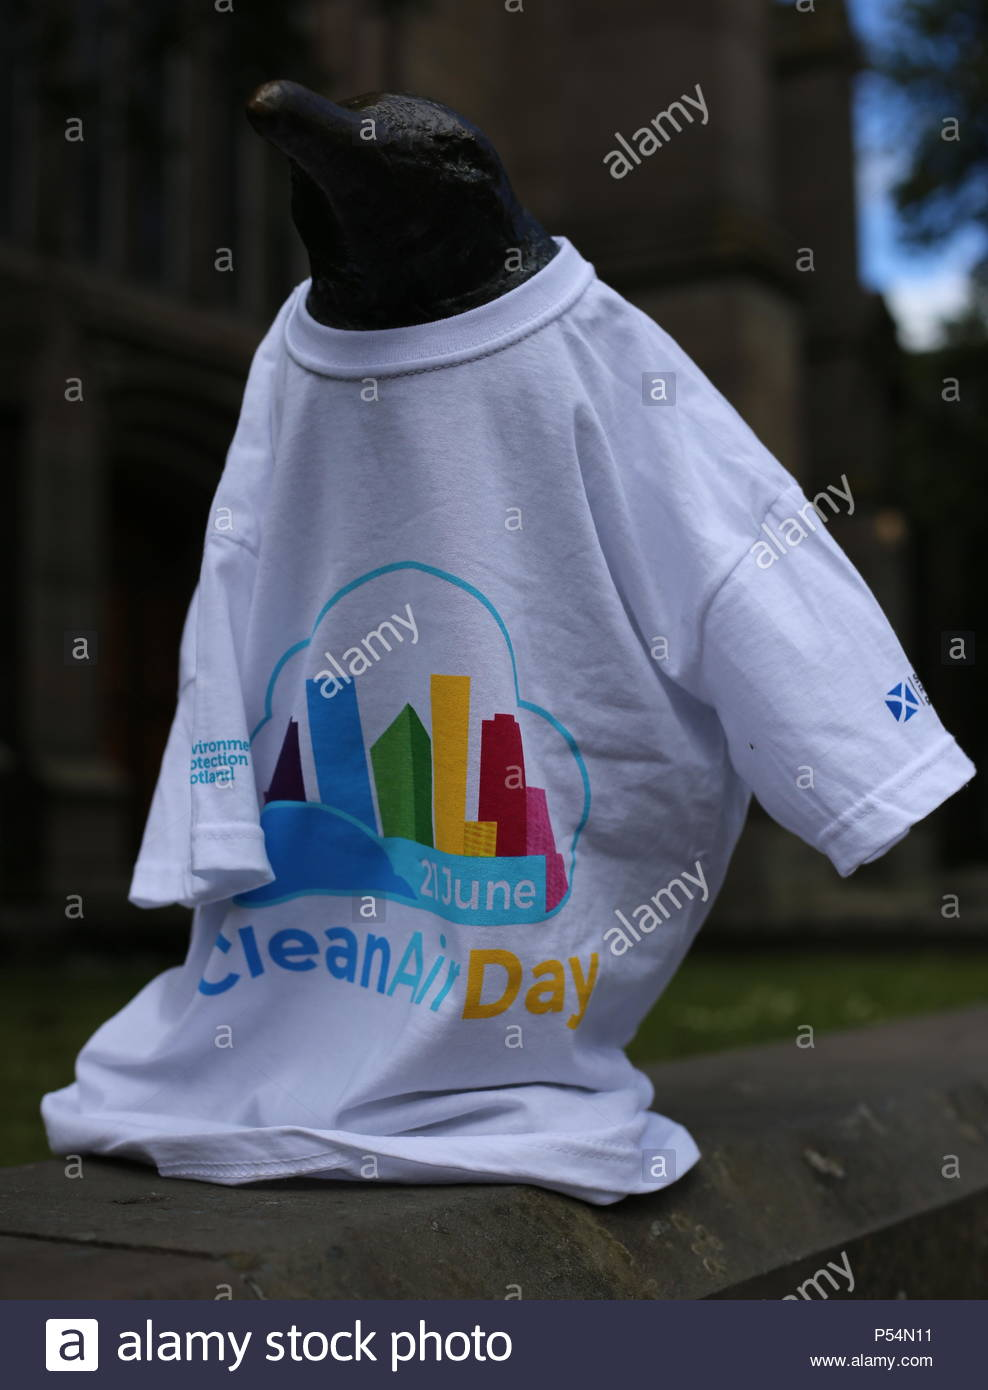 Penguin sculpture with T-shirt to promote Clean Air Day Dundee Scotland  21st June 2018 - Stock Image